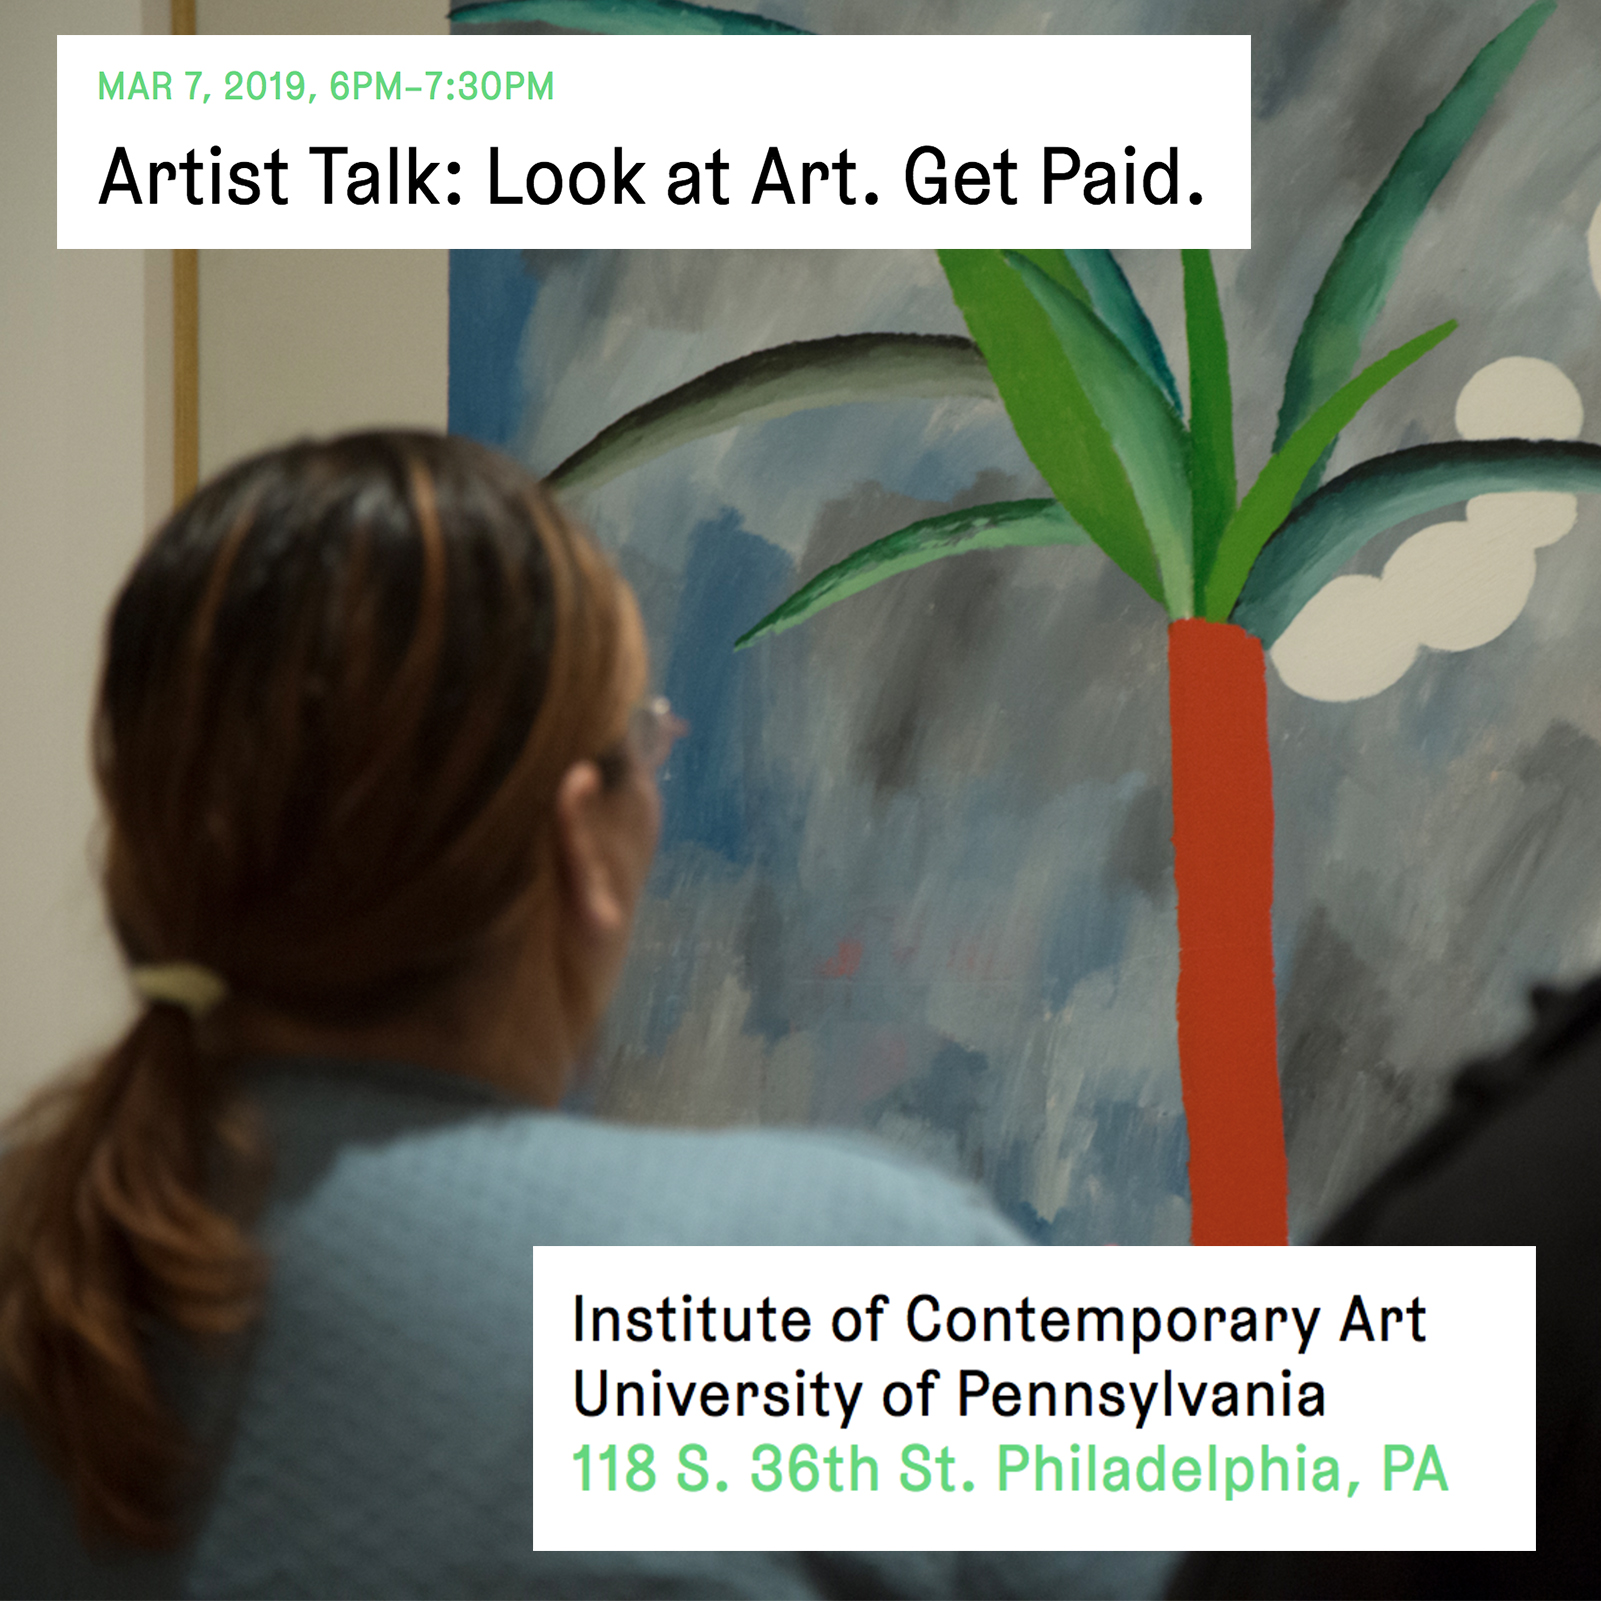 NEWS — LOOK AT ART  GET PAID